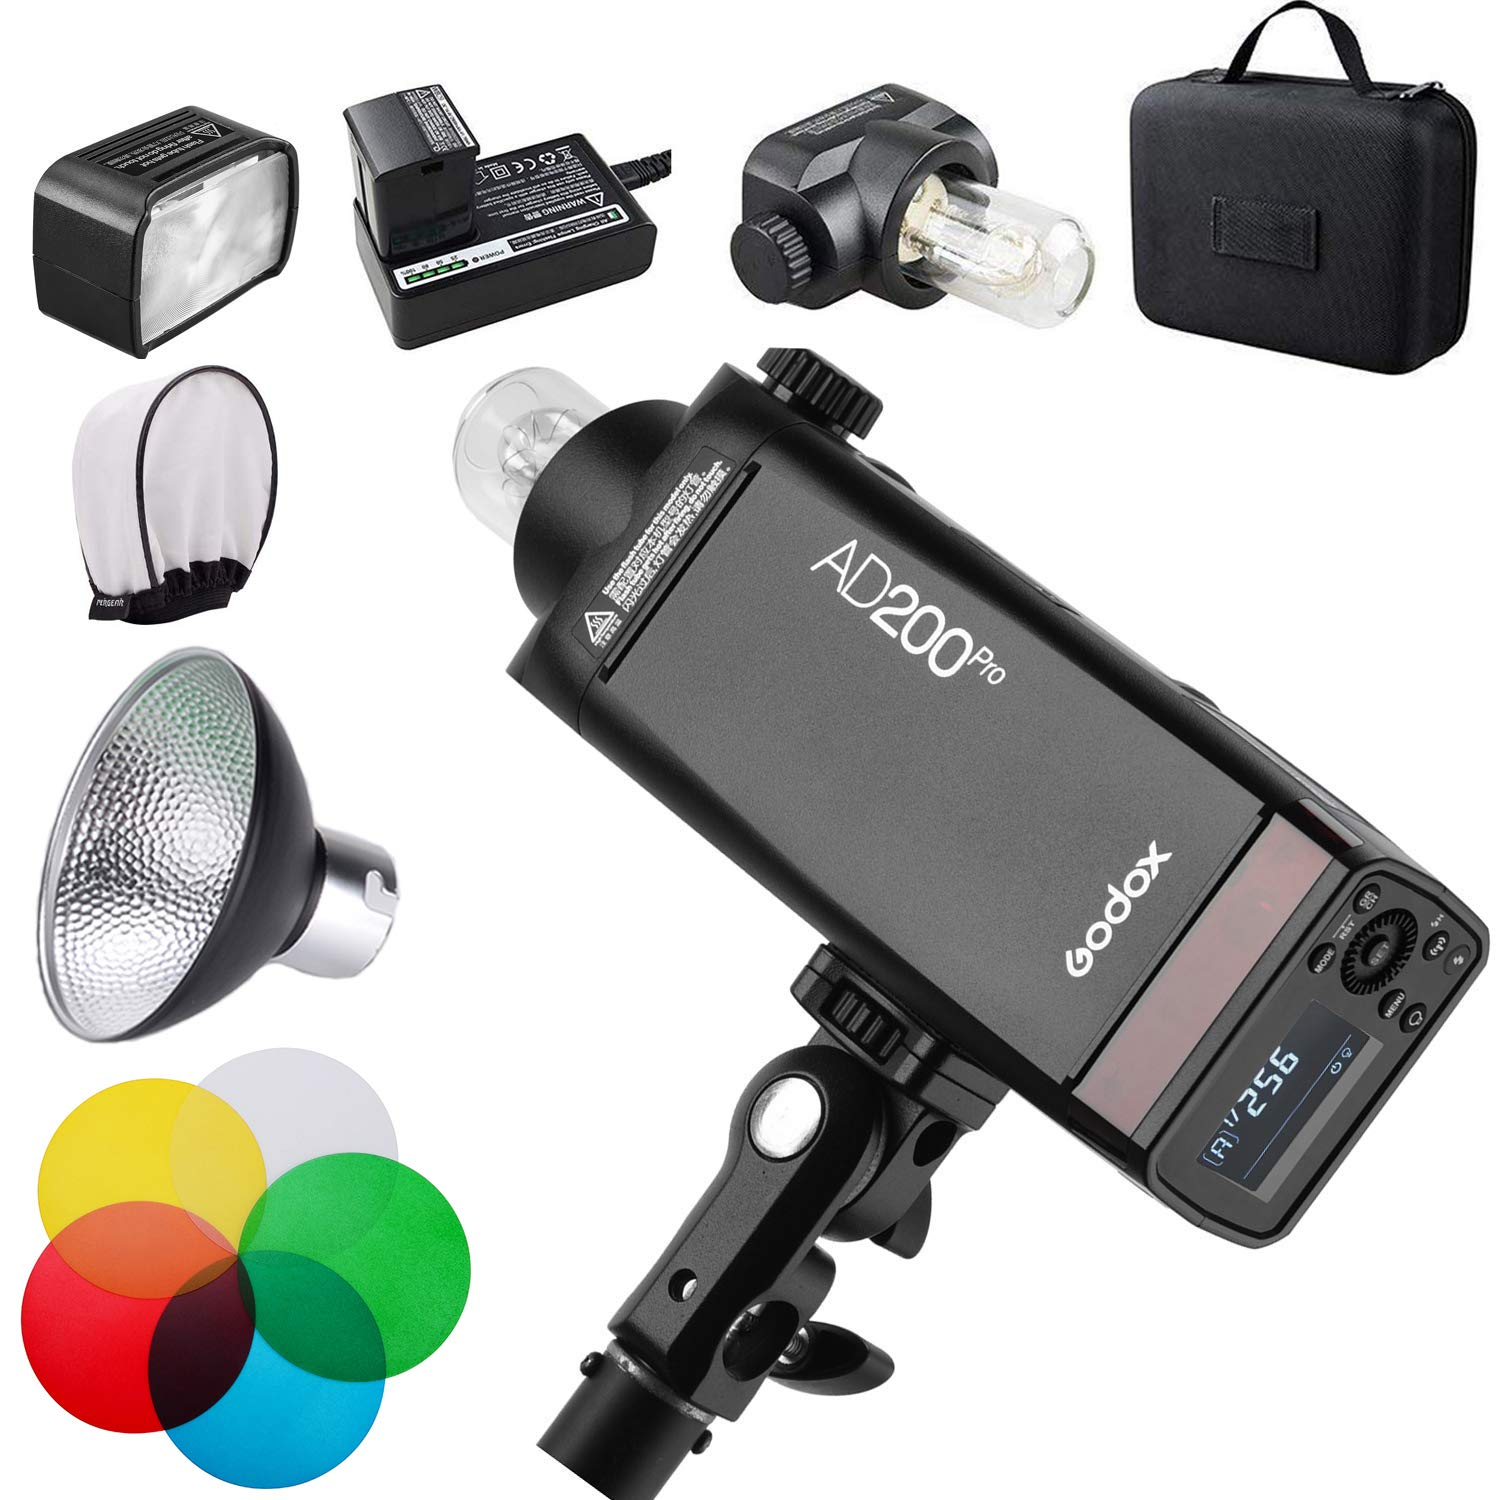 GODOX AD200Pro AD200 PRO with Reflector and Color Filters Kit, 200Ws 2.4G Flash Strobe, 1/8000 HSS, 500 Full Power Flashes, 0.01-1.8s Recycling, 2900mAh Battery, Bare Bulb/Speedlite Fresnel Flash Head by Godox